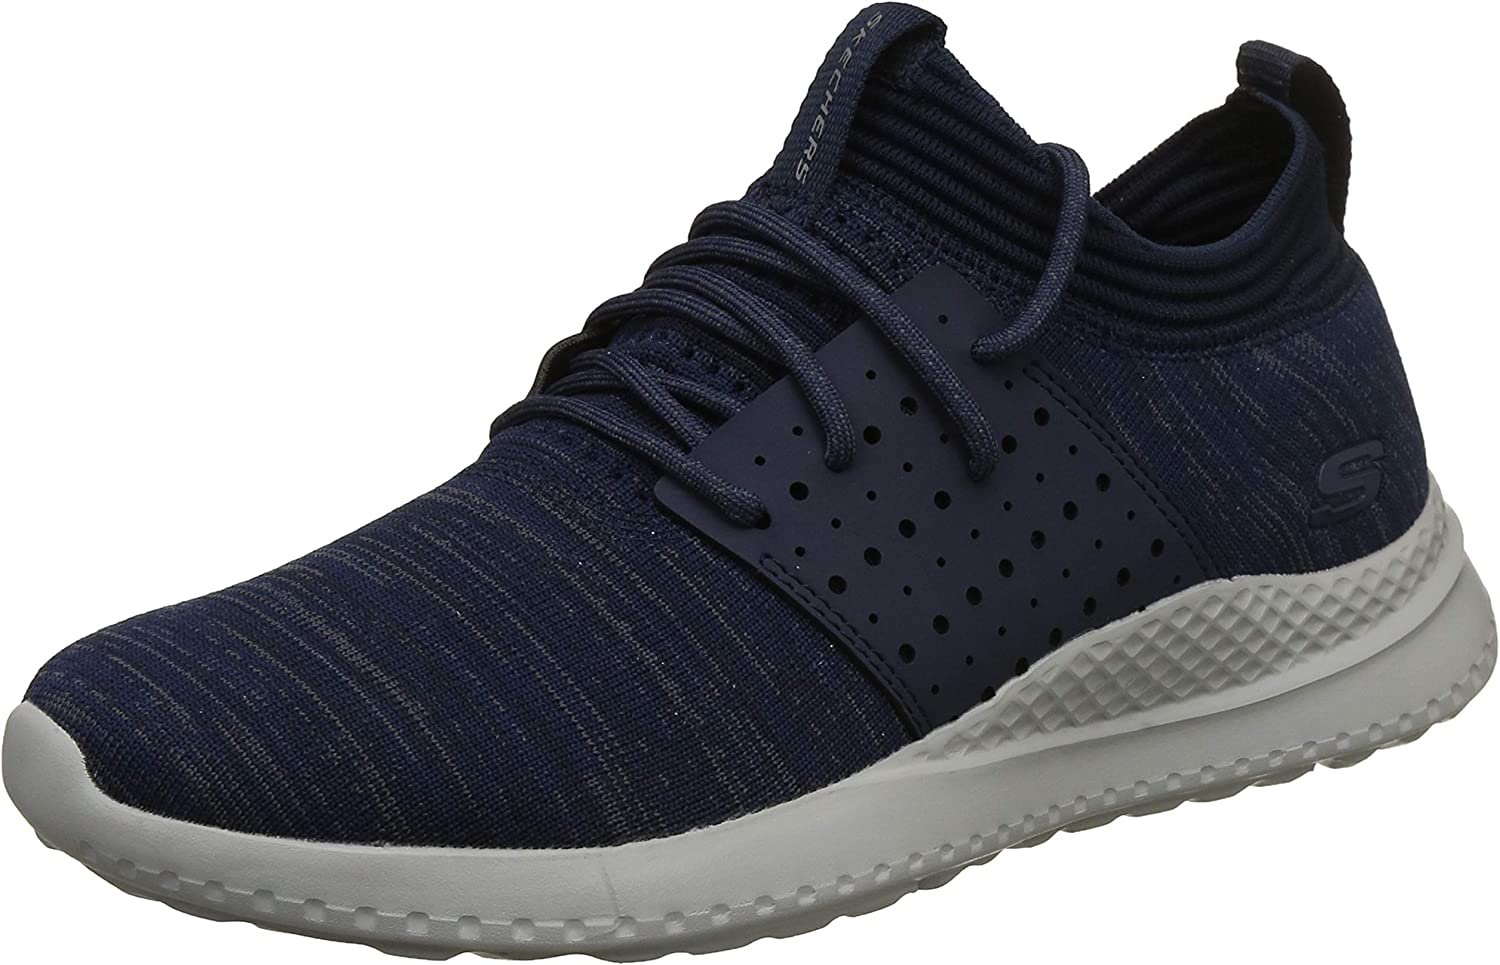 Skechers Mens Black Matera Knocto Trainers